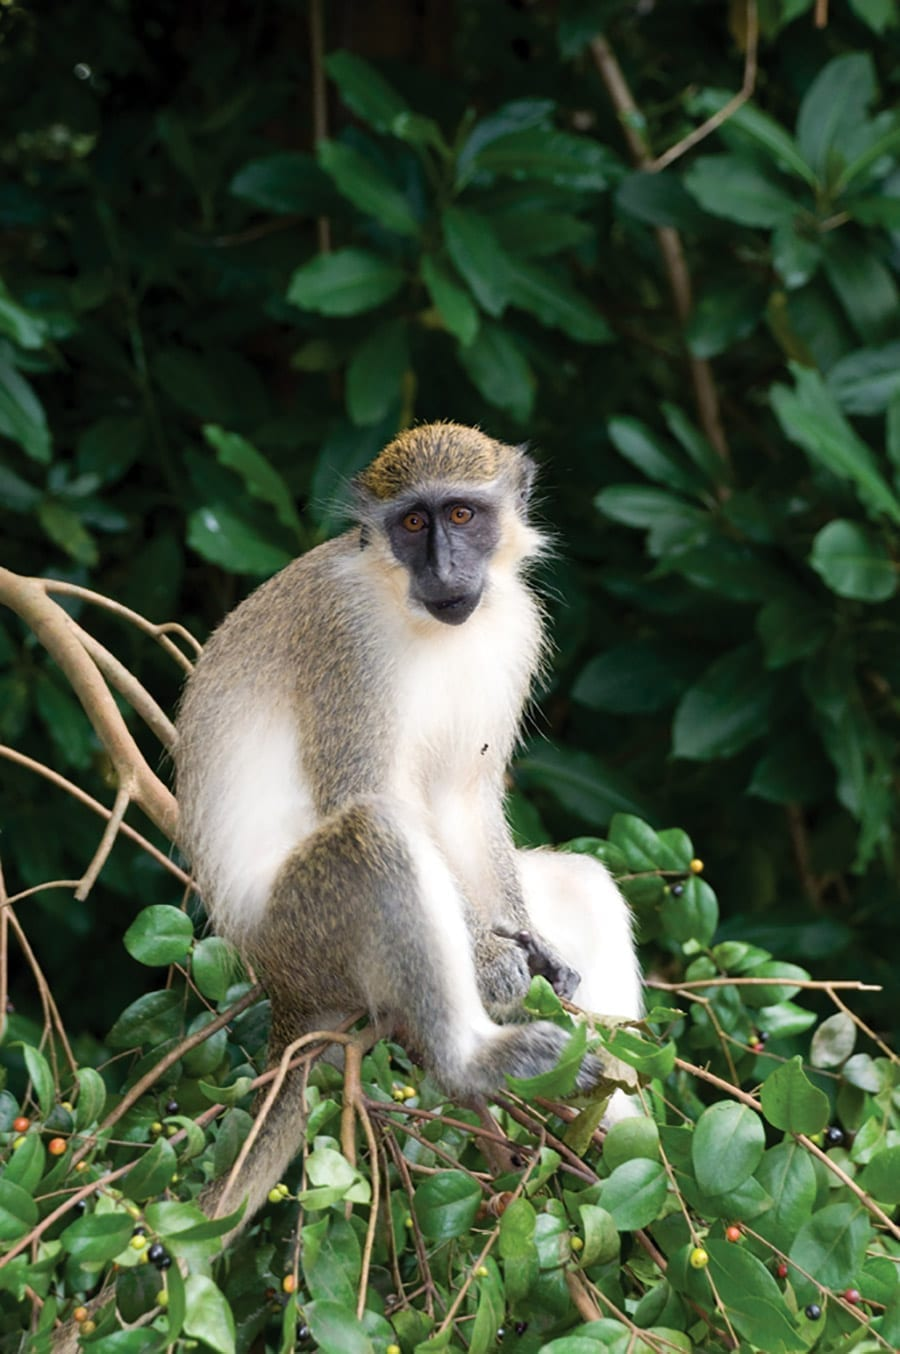 Monkeys are very playful and can be seen running to and fro through the trees and swinging from the branches. They use facial expressions and body language to communicate their emotions.